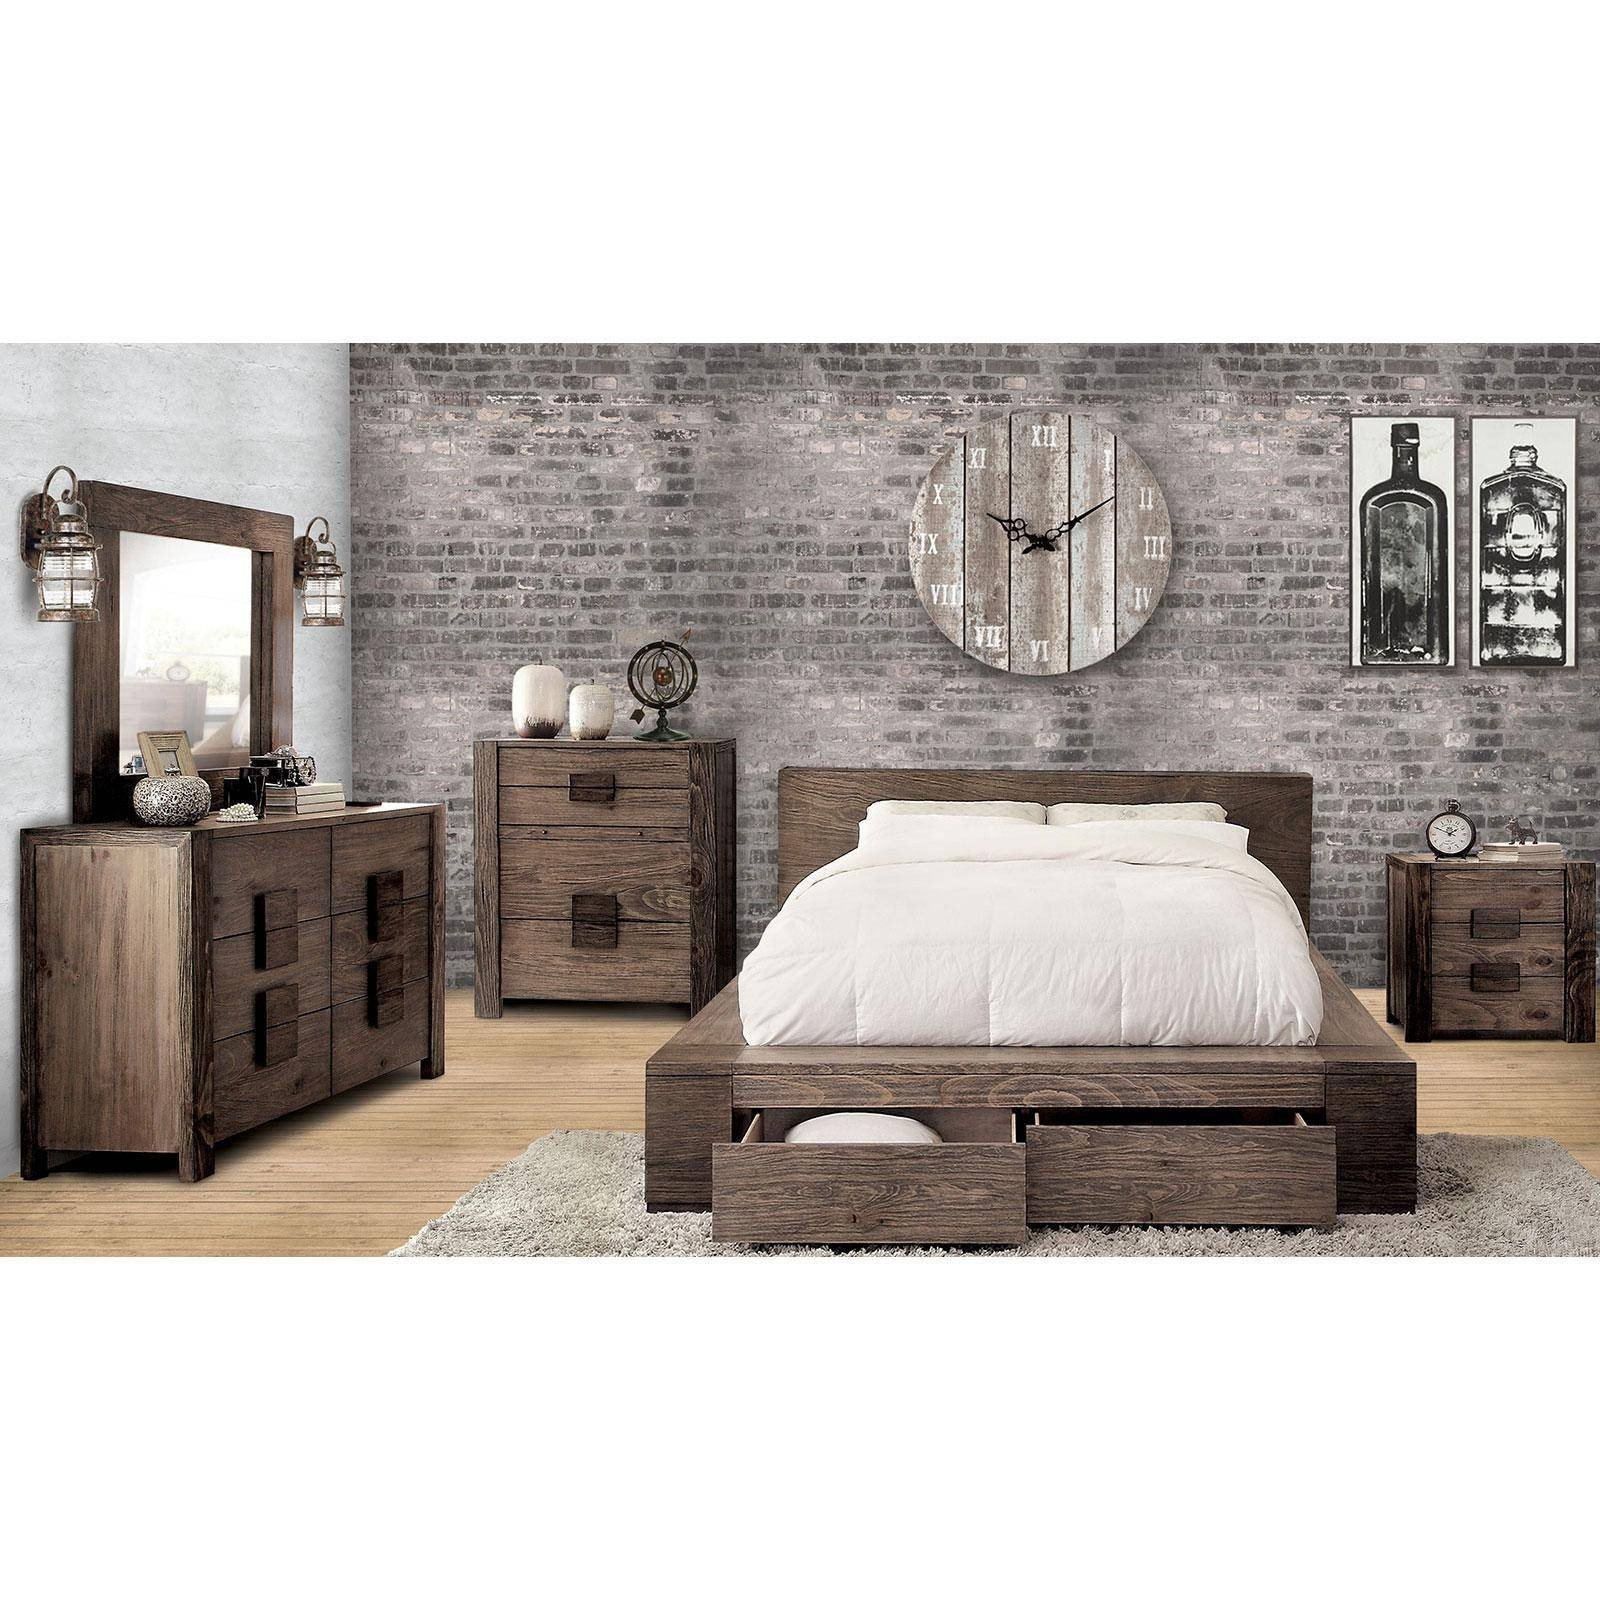 Rustic White Bedroom Set Fresh Rustic Natural Finish Queen Storage Bedroom Set 4 Pcs